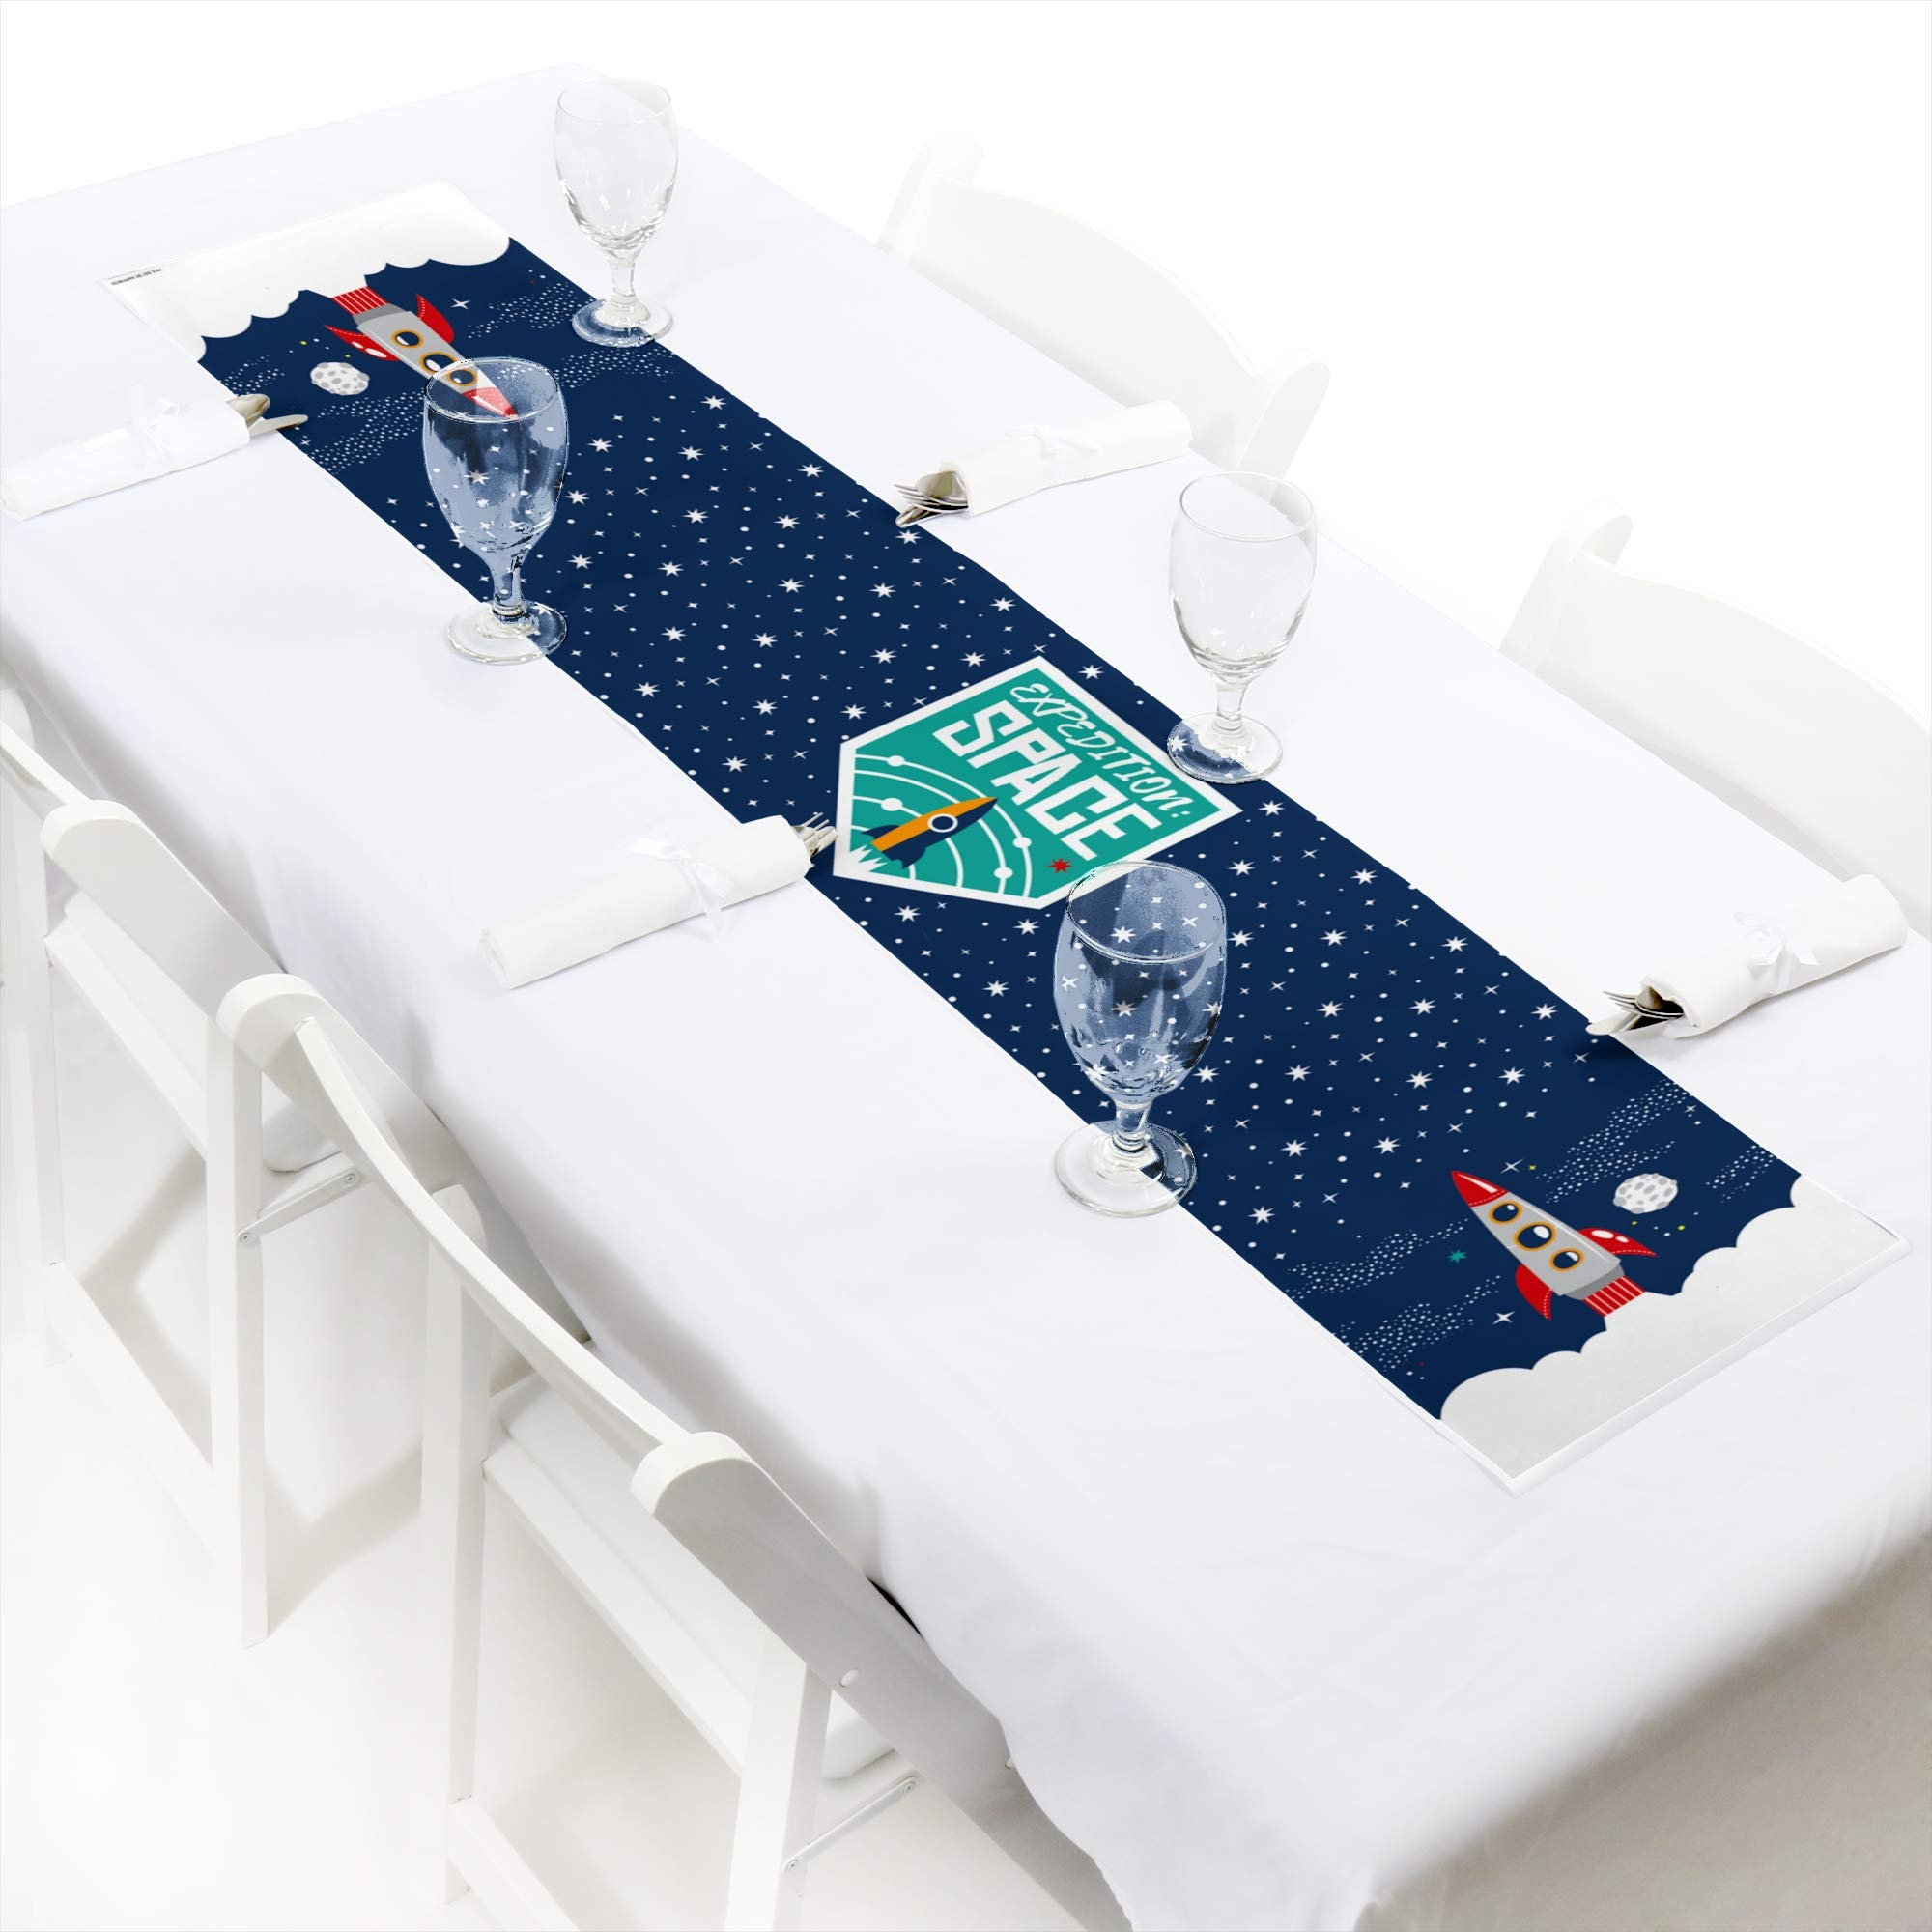 Big Dot of Happiness Blast Off to Outer Space - Petite Rocket Ship Baby Shower or Birthday Party Paper Table Runner - 12 x 60 inches by Big Dot of Happiness